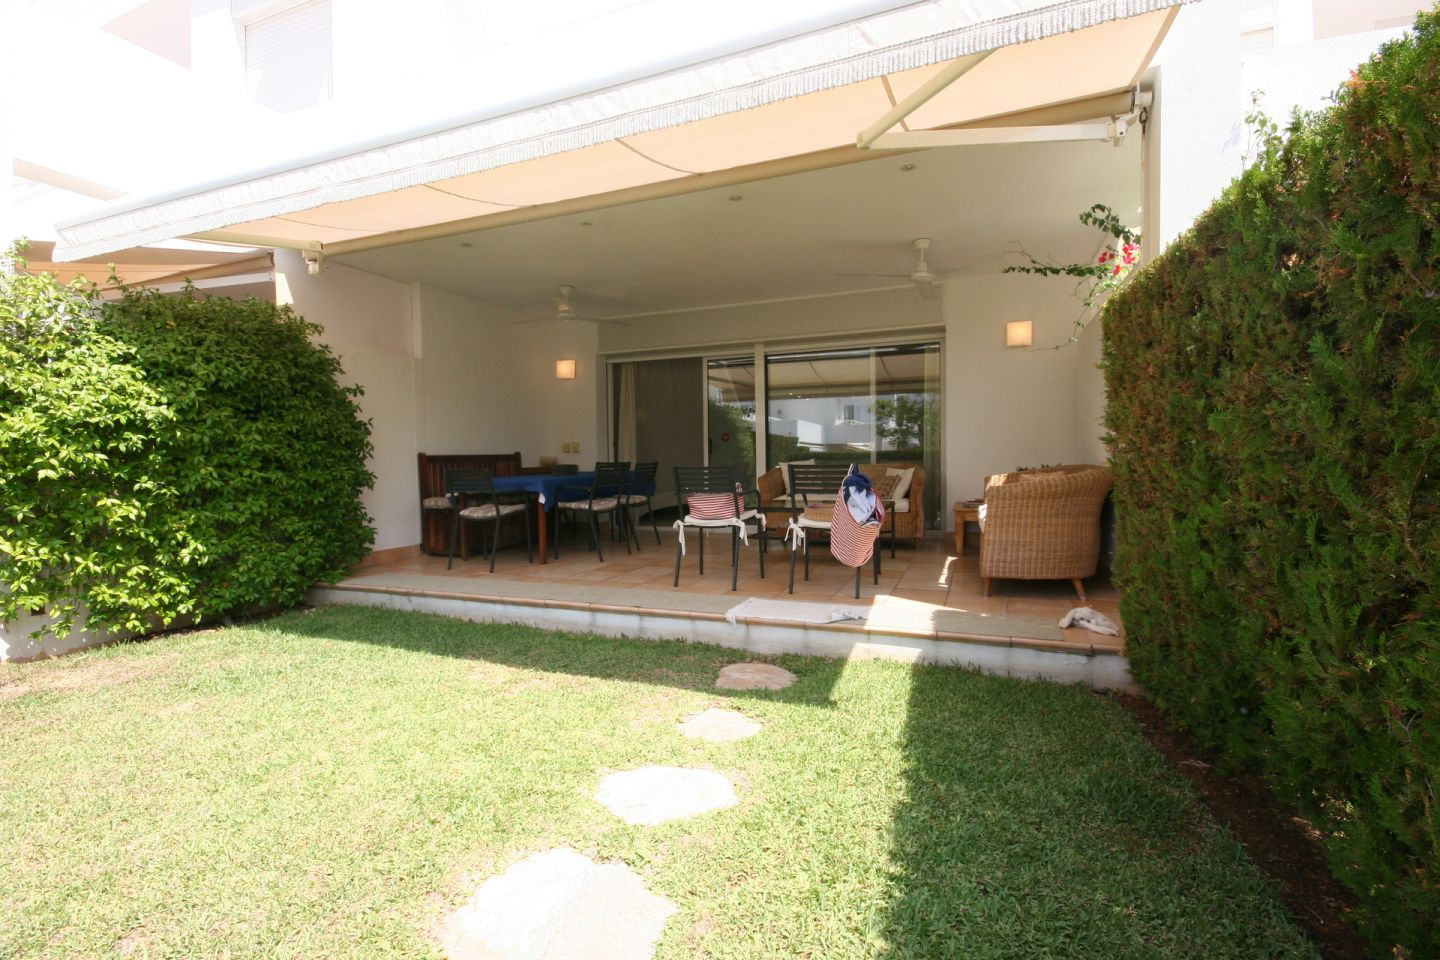 4 Bed Semidetached House for sale in PUERTO POLLENSA 13